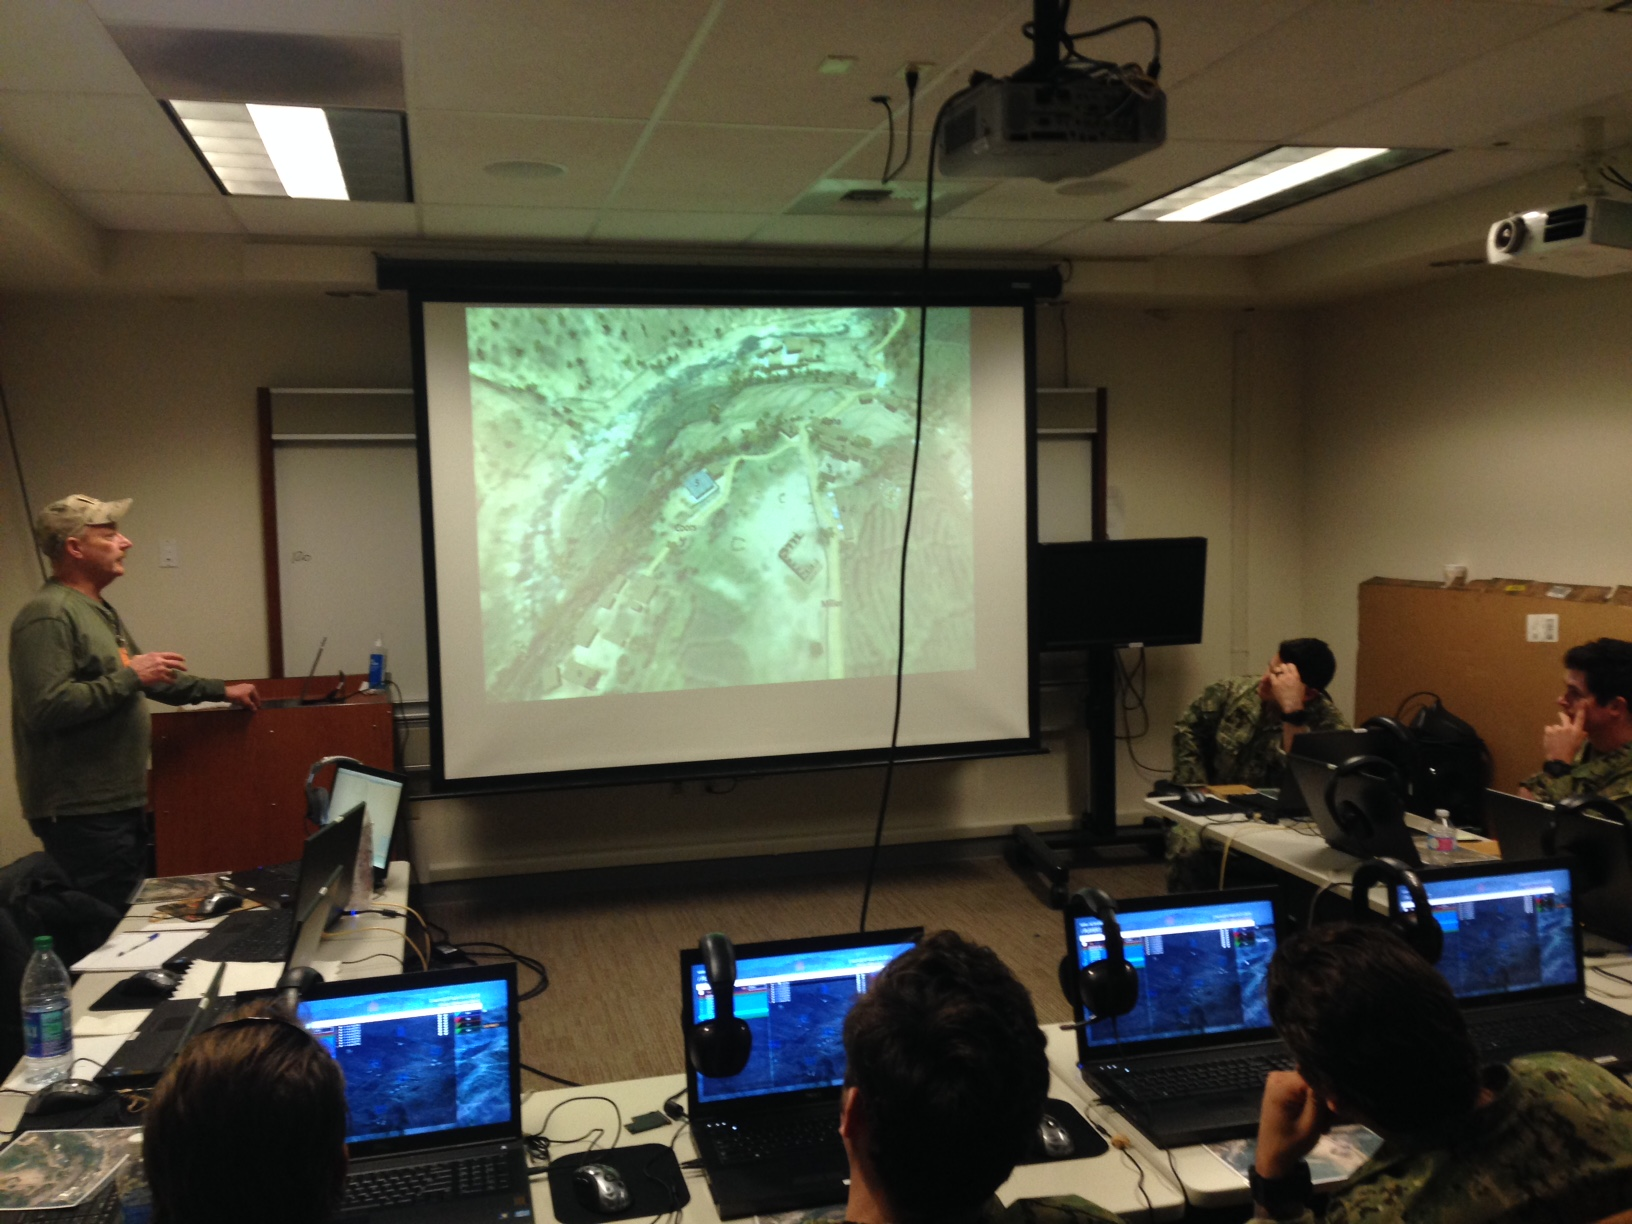 Proven track record - VATC has provided VCAS training to 25 partner nations and to over 8,000 individual students. This program, virtual close air support training, has resulted in $32 million of total deferred costs, versus live training.